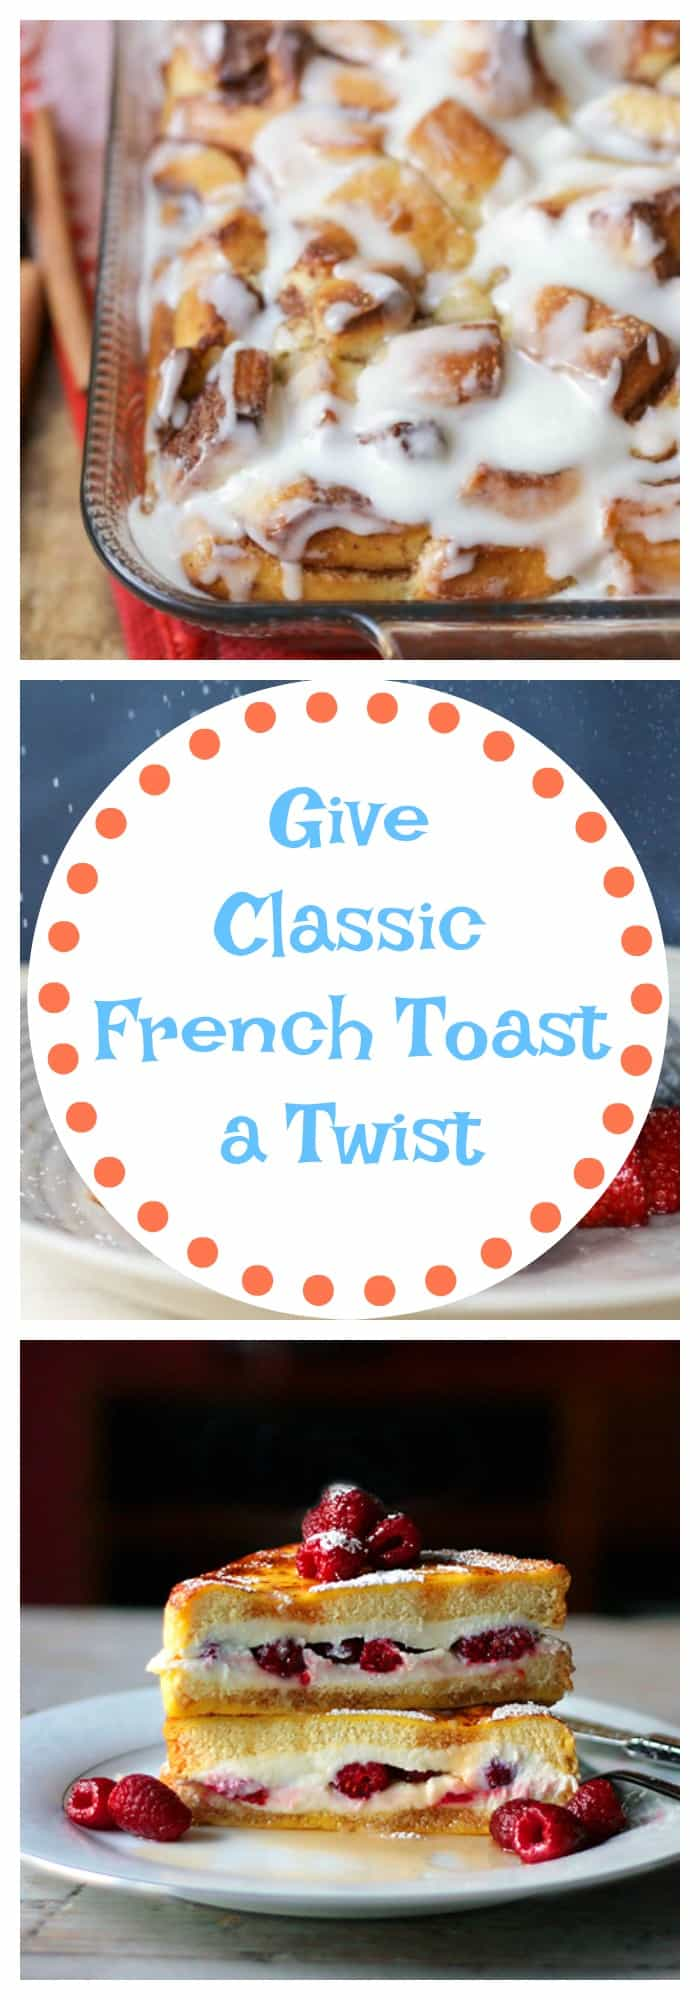 Give Classic French Toast a Twist